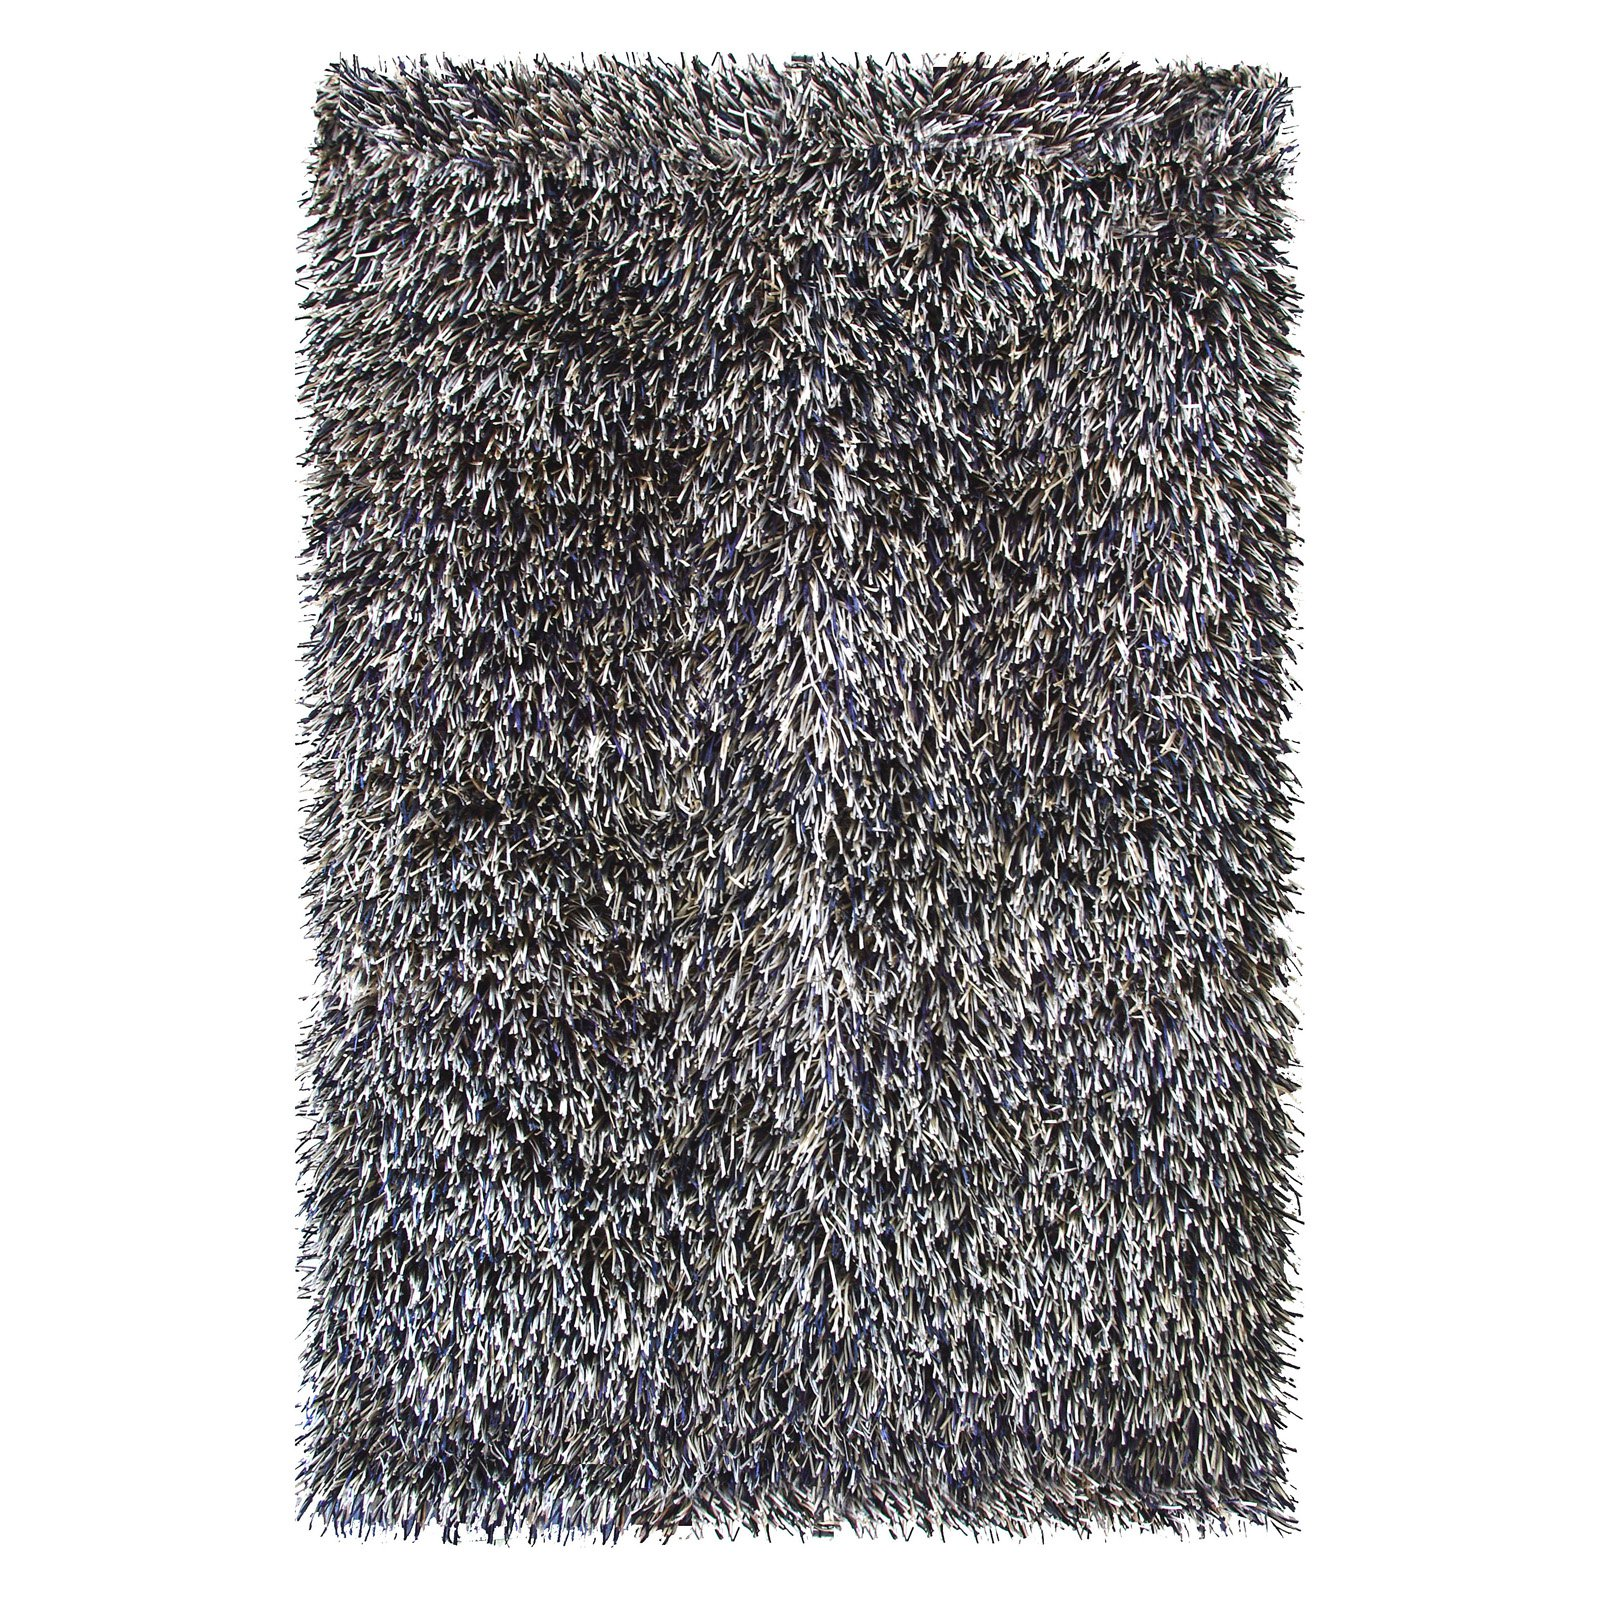 Foreign Accents Elementz Fettuccine Rug   3.5 X 5.5 Ft.   Silver